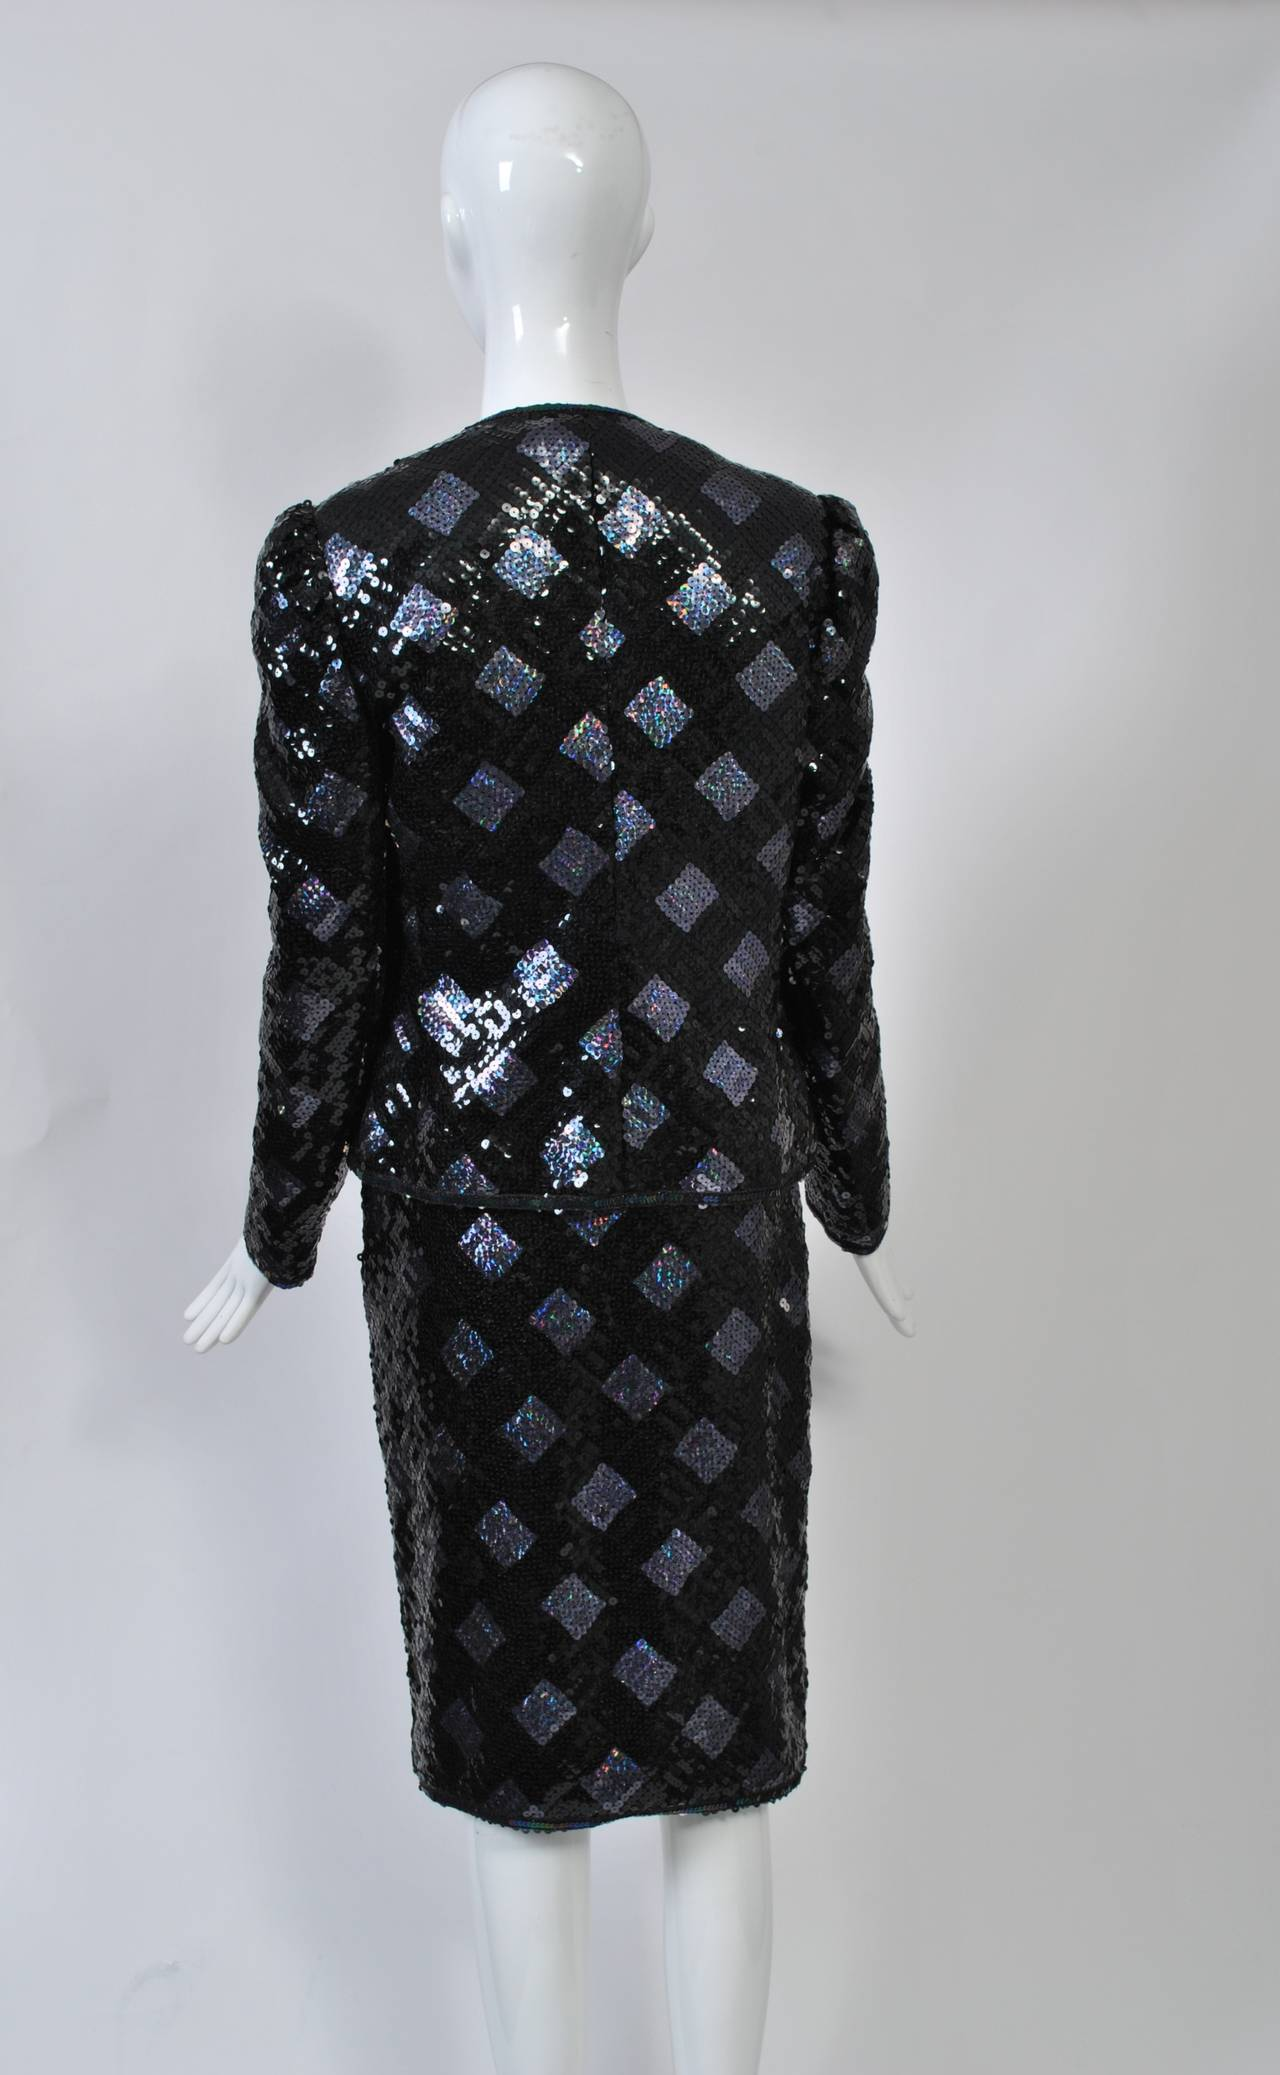 Adolfo Sequin and Lame Suit In Excellent Condition For Sale In Alford, MA